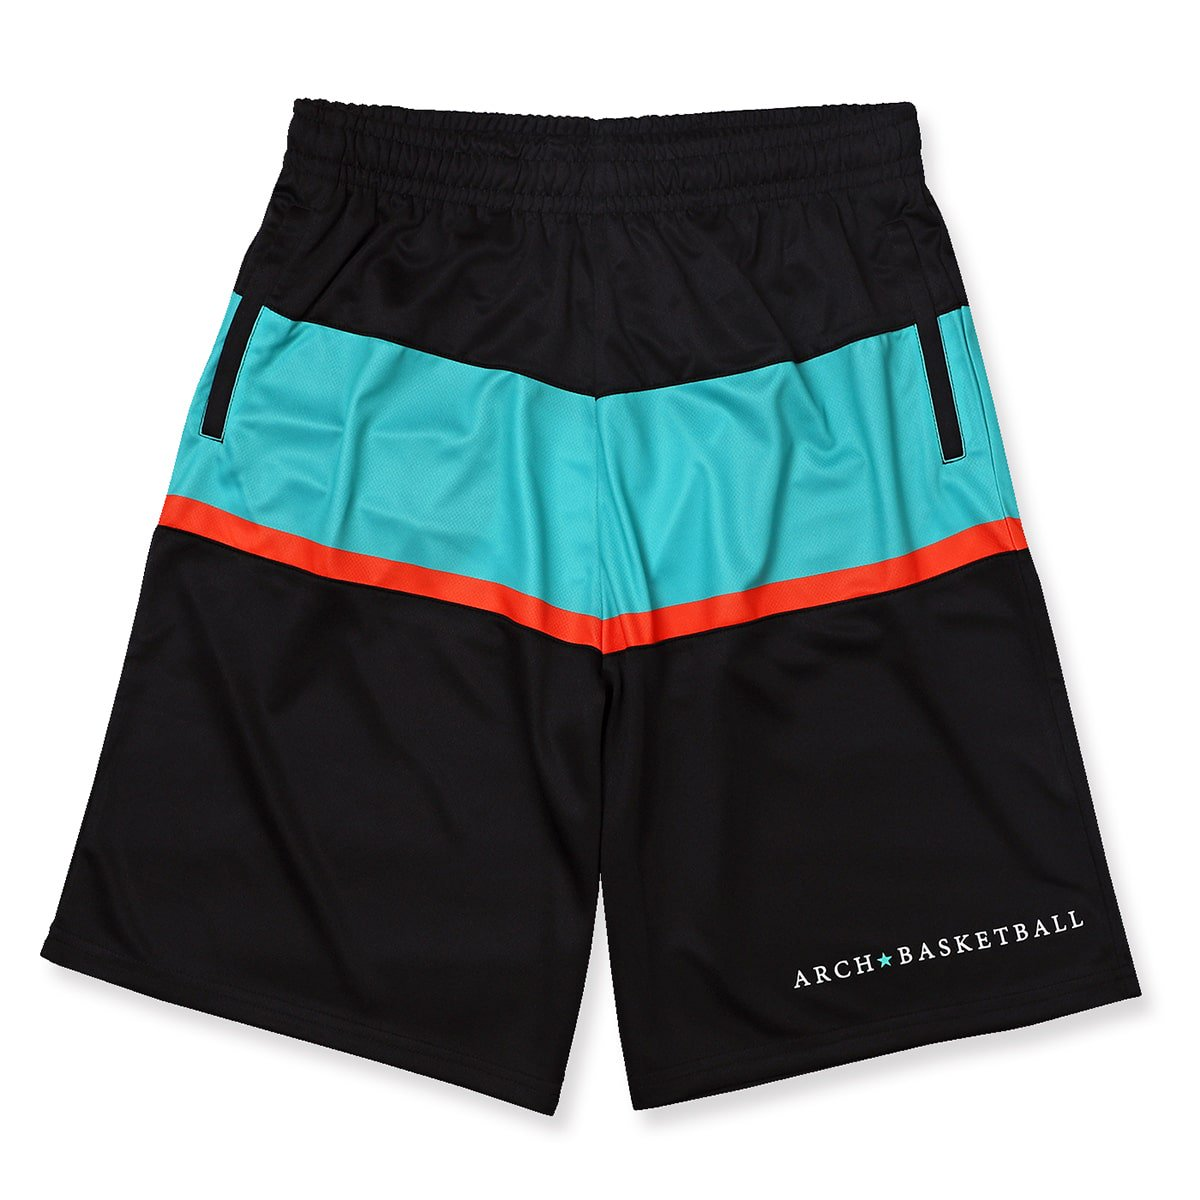 paneled shorts【black/mint】